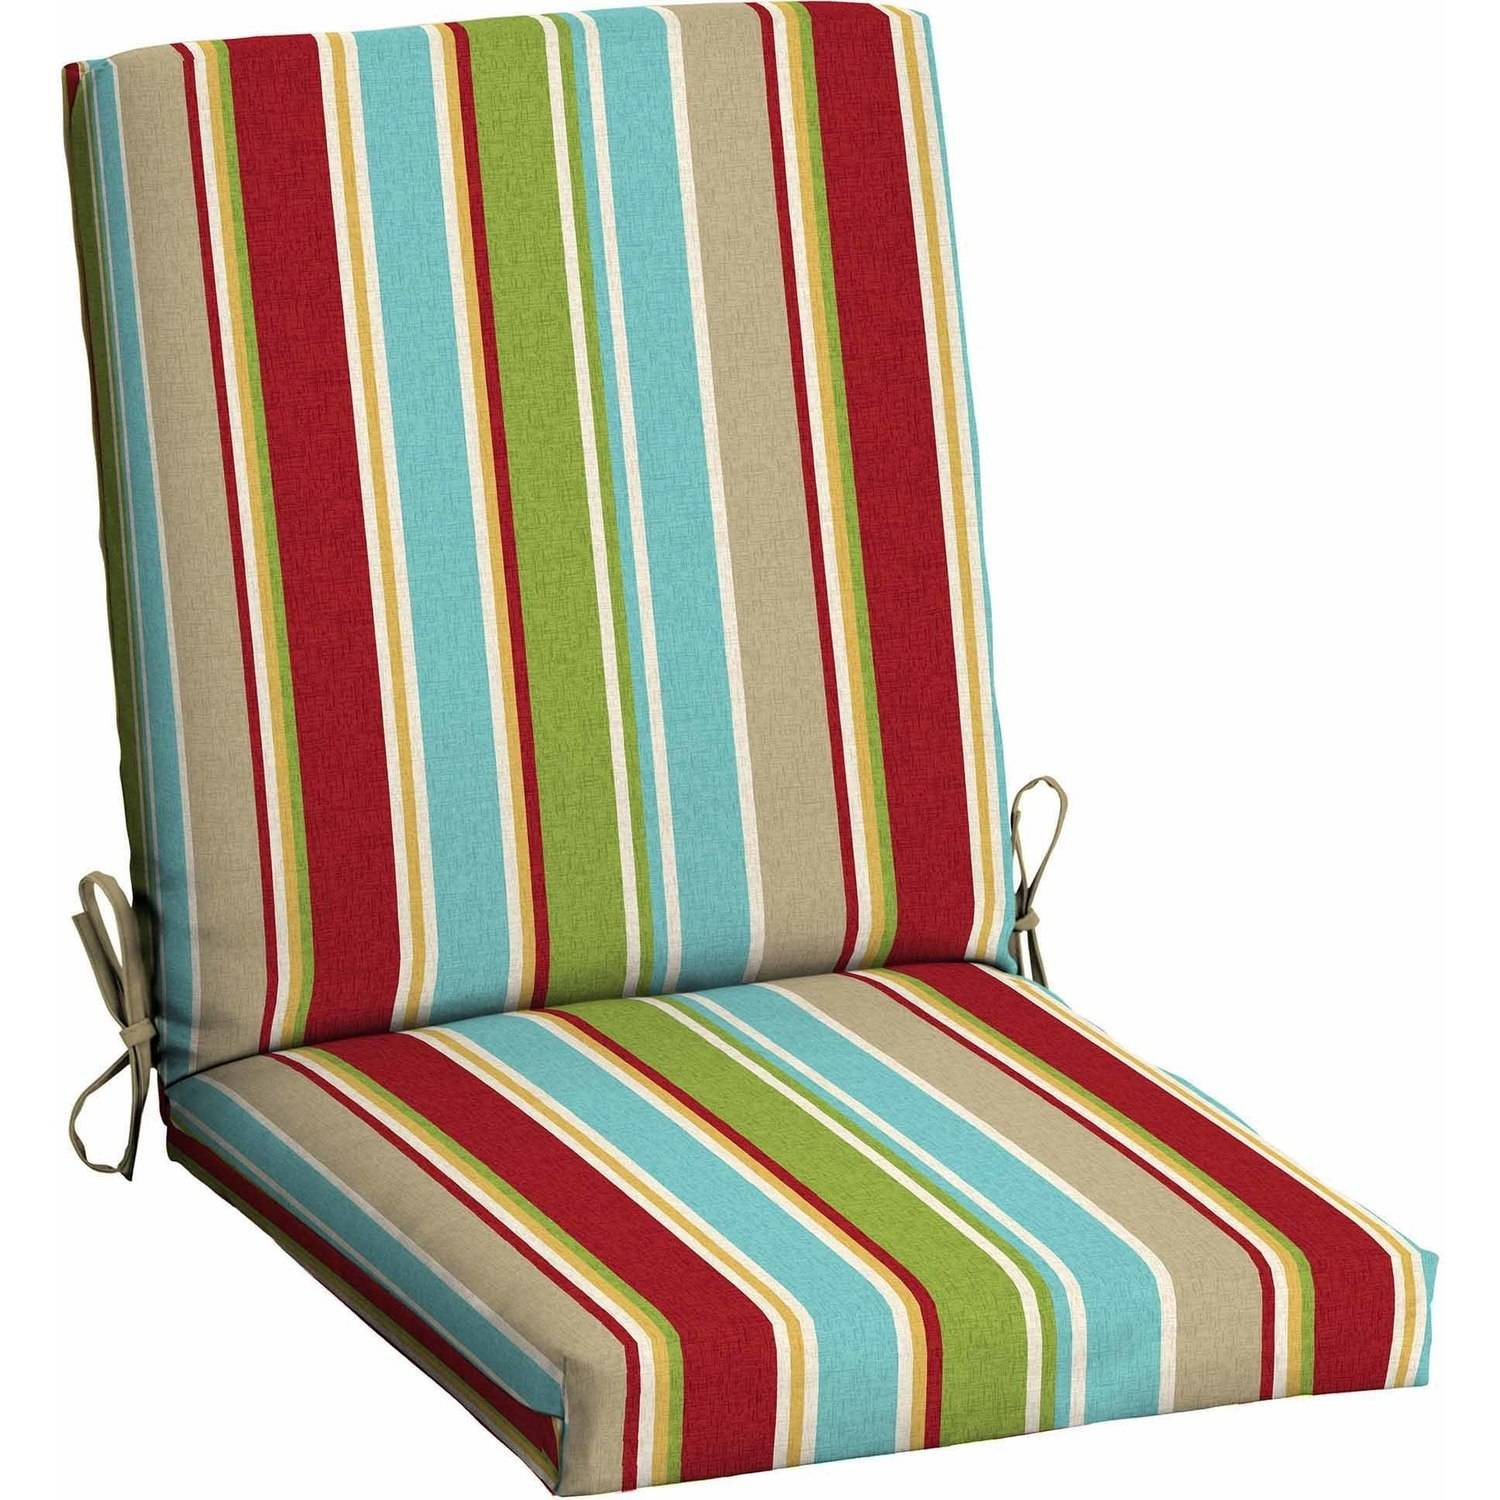 patio cushions mainstays outdoor patio dining chair cushion - walmart.com HDGSBAC